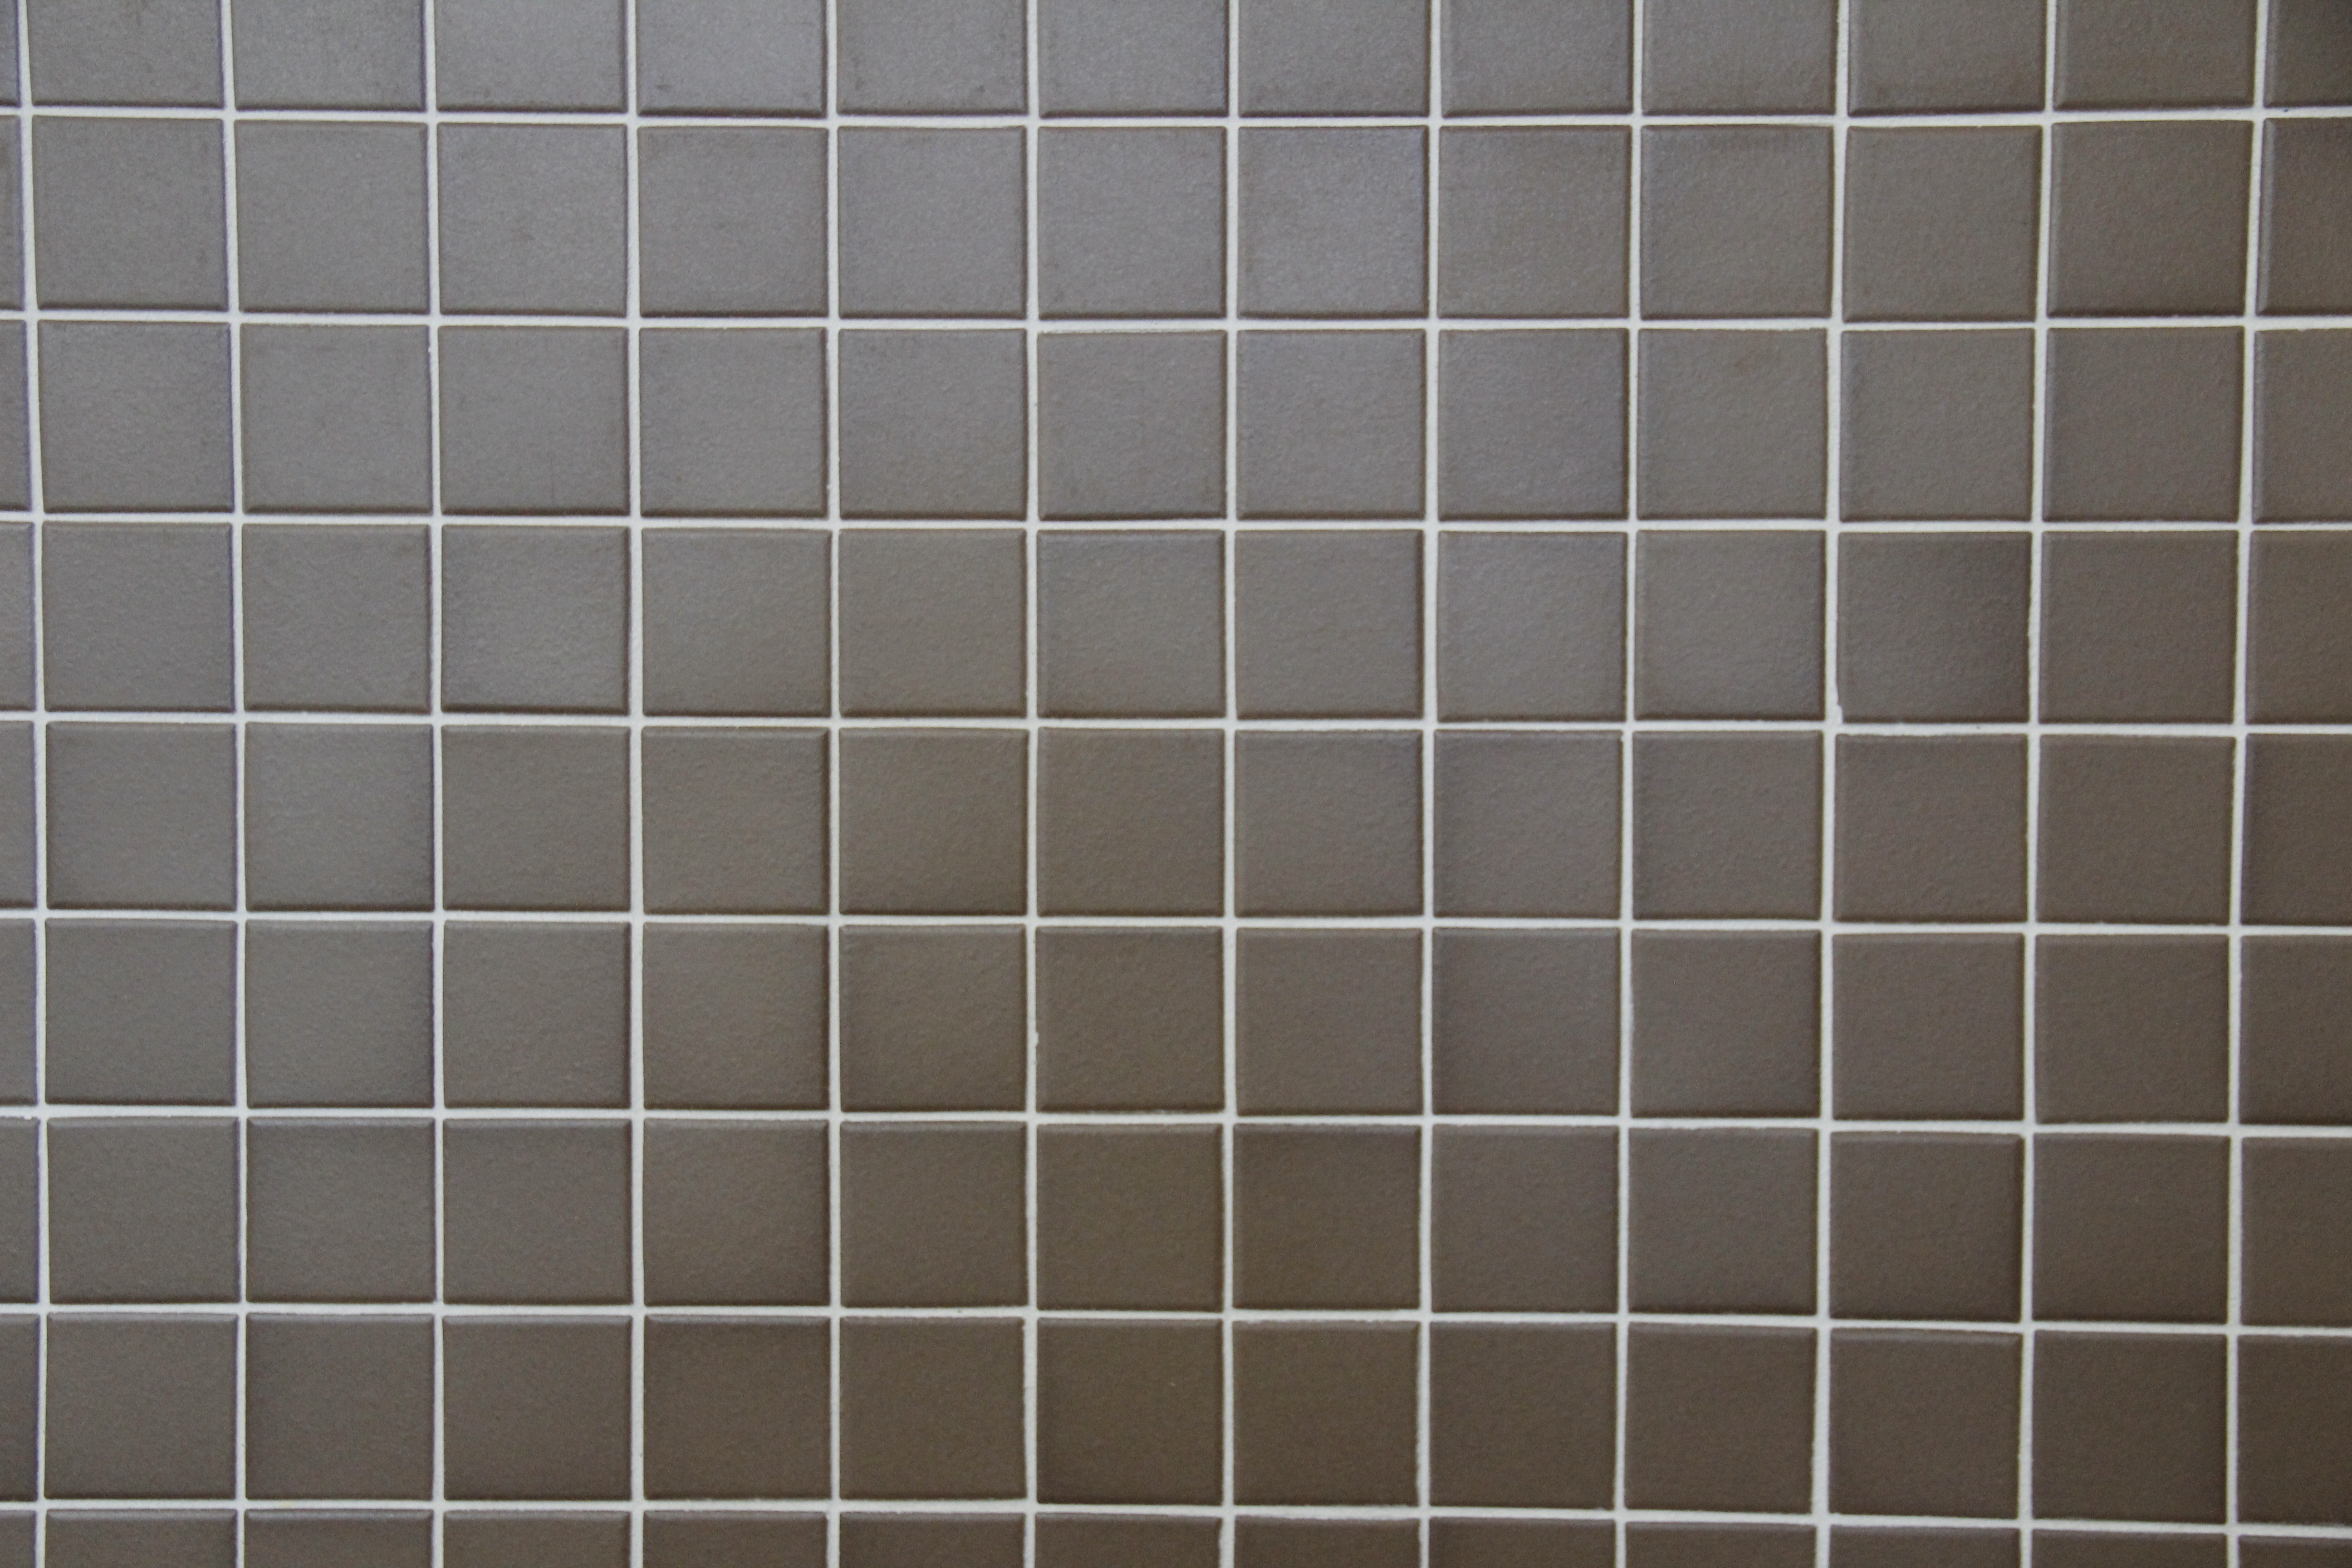 Tiled Wall Texture By Scooterboyex221 On Deviantart